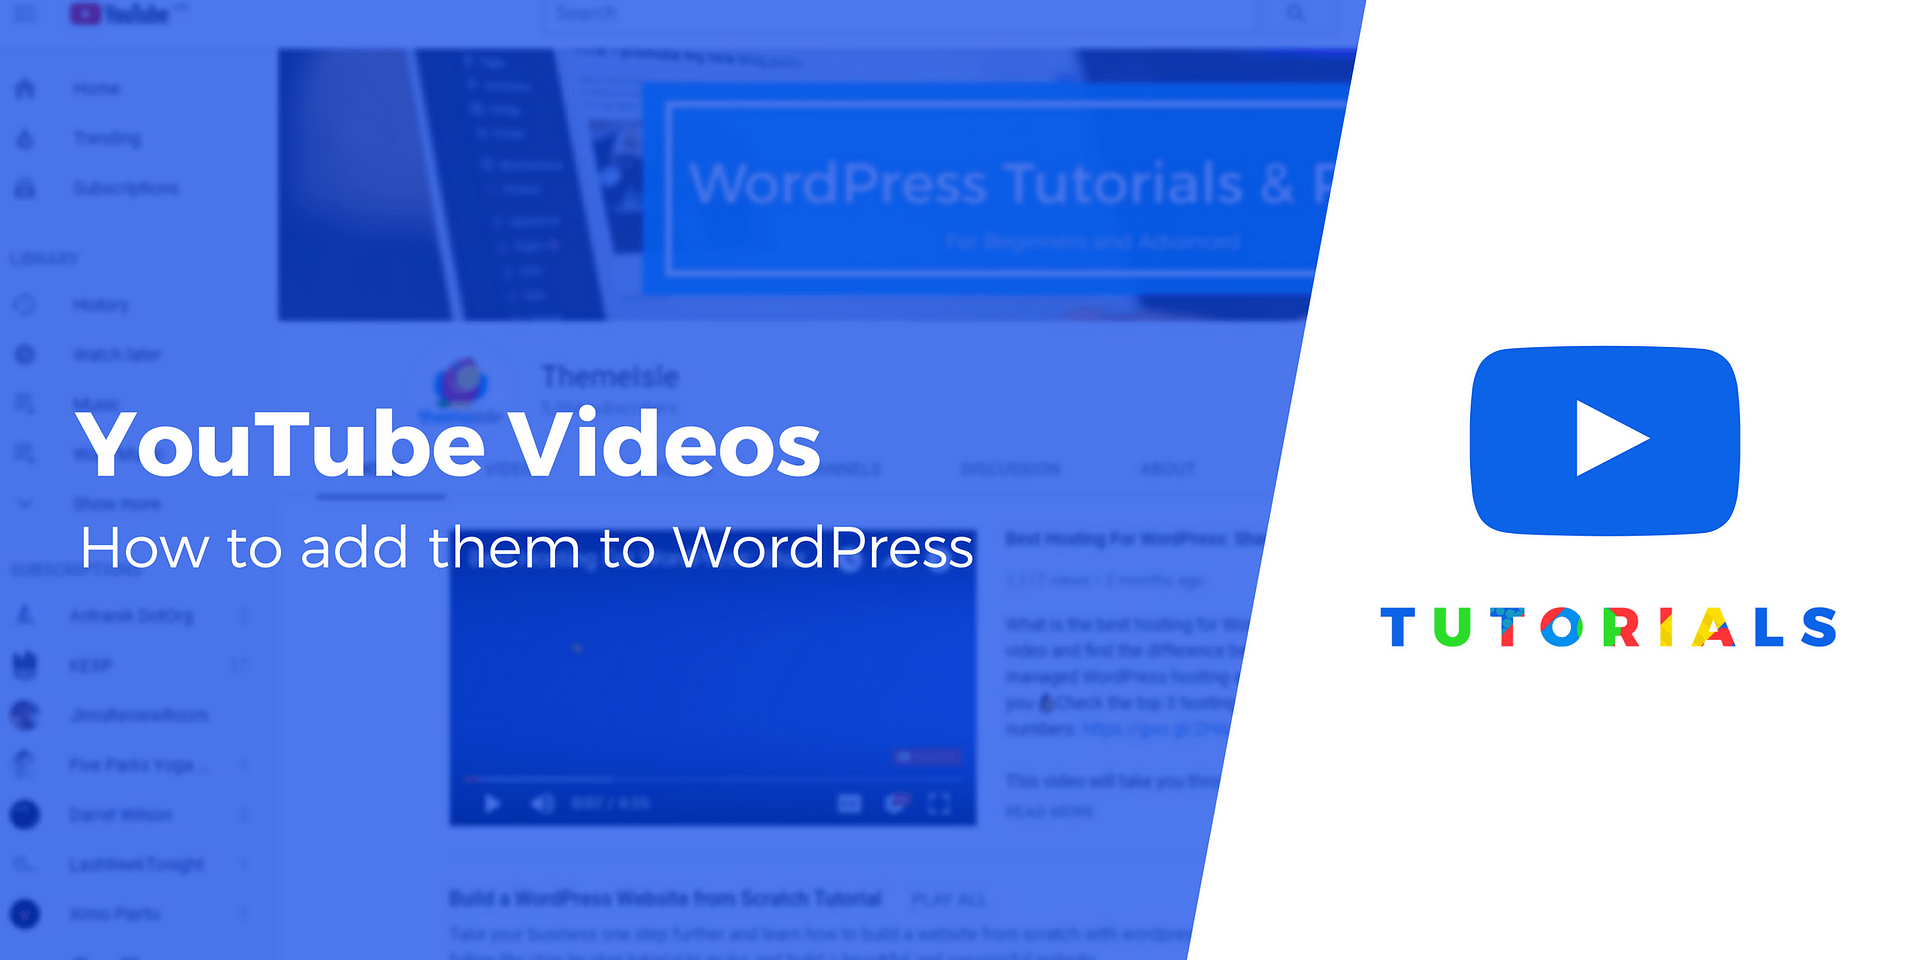 3 Ways to Add YouTube Videos to WordPress: Video, Channels + More